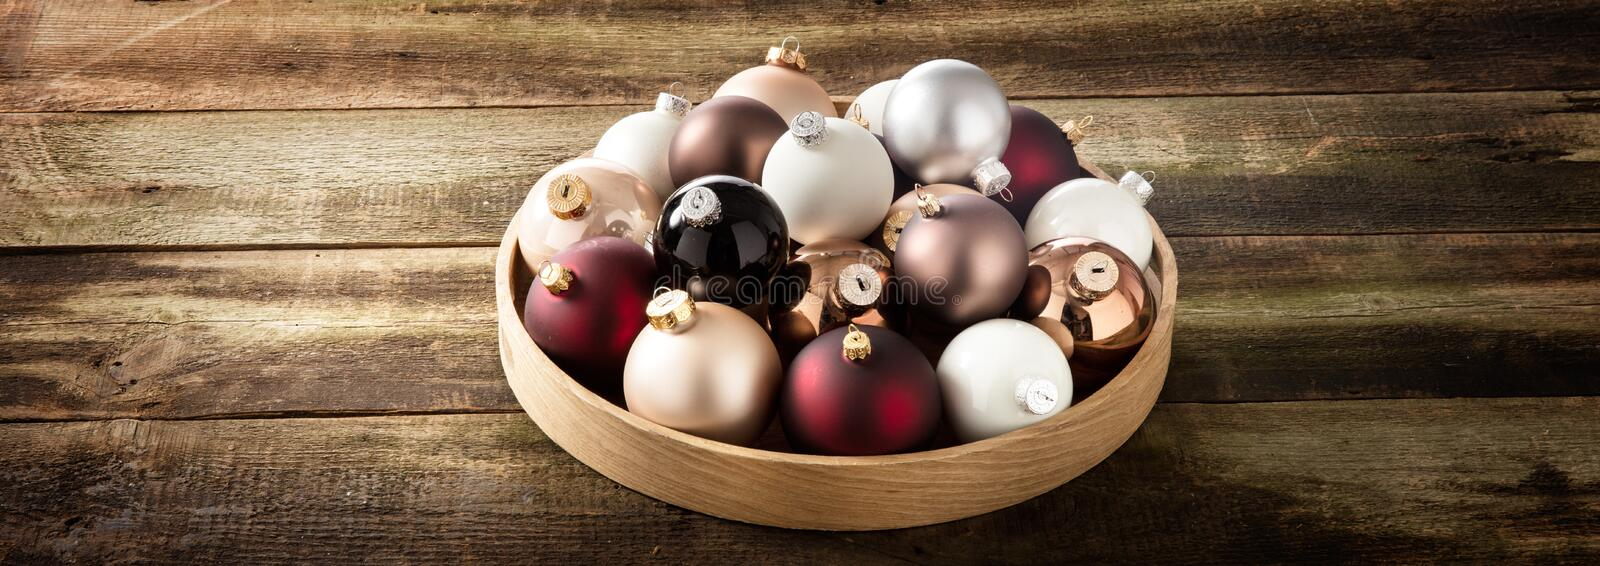 Preparing a vintage Christmas with baubles on retro wood background stock image